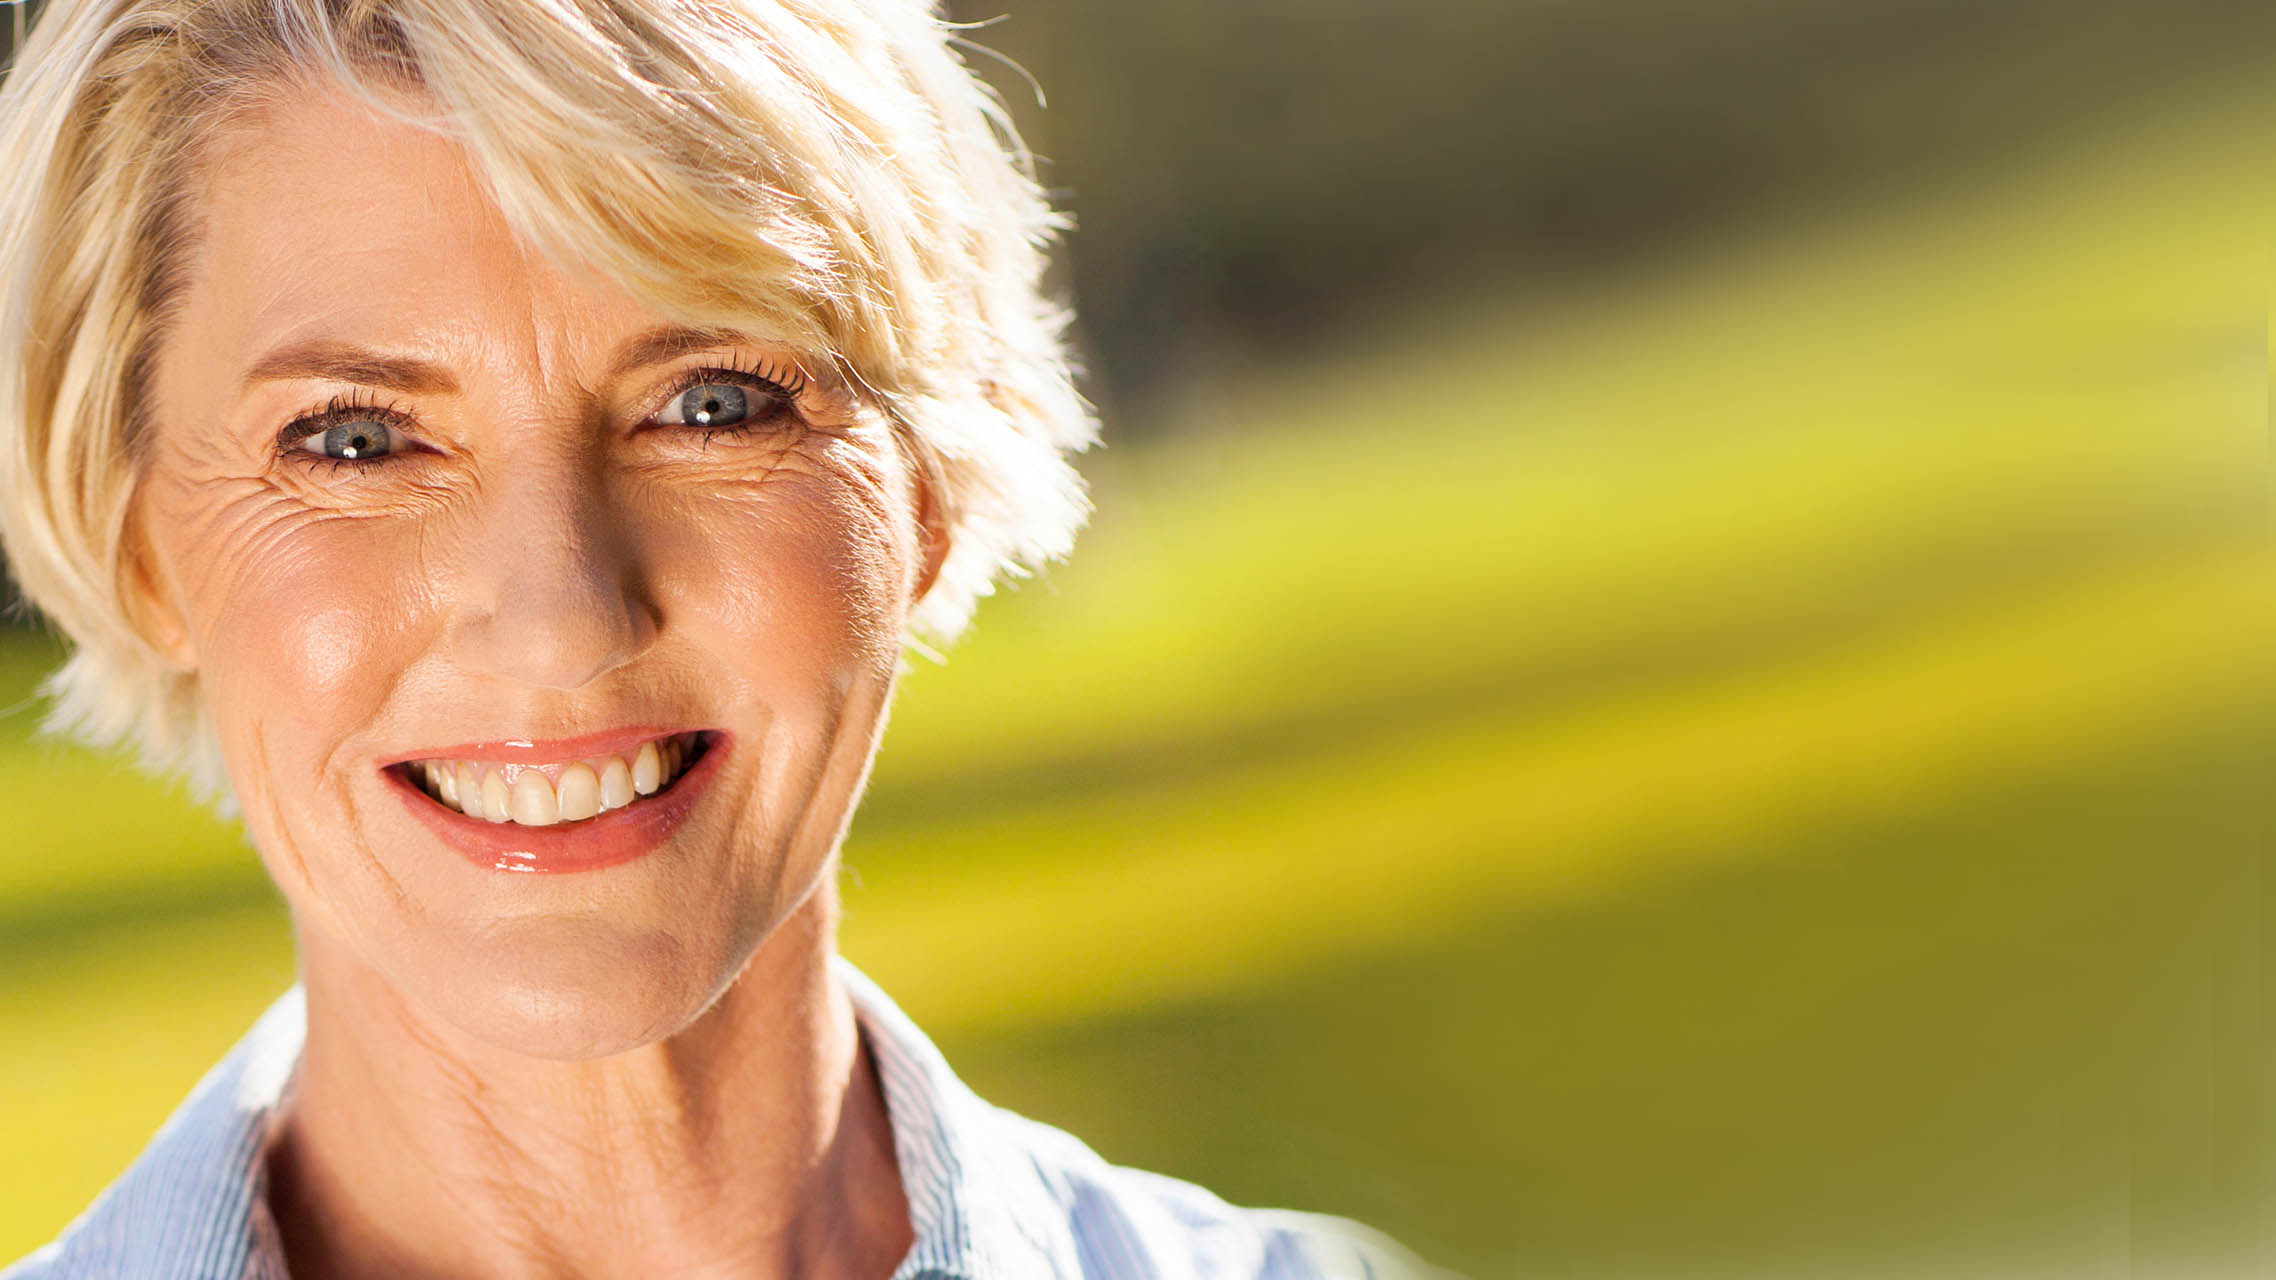 Middle aged woman smiling headshot